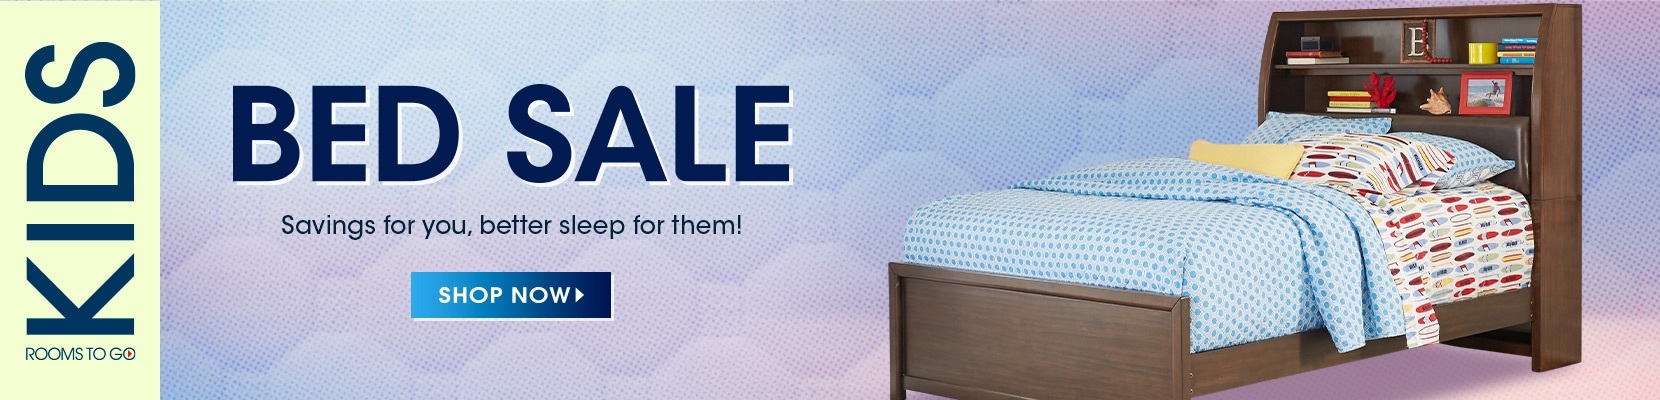 Rooms to go kids beds sale. savings for you, better sleep for them! shop now.